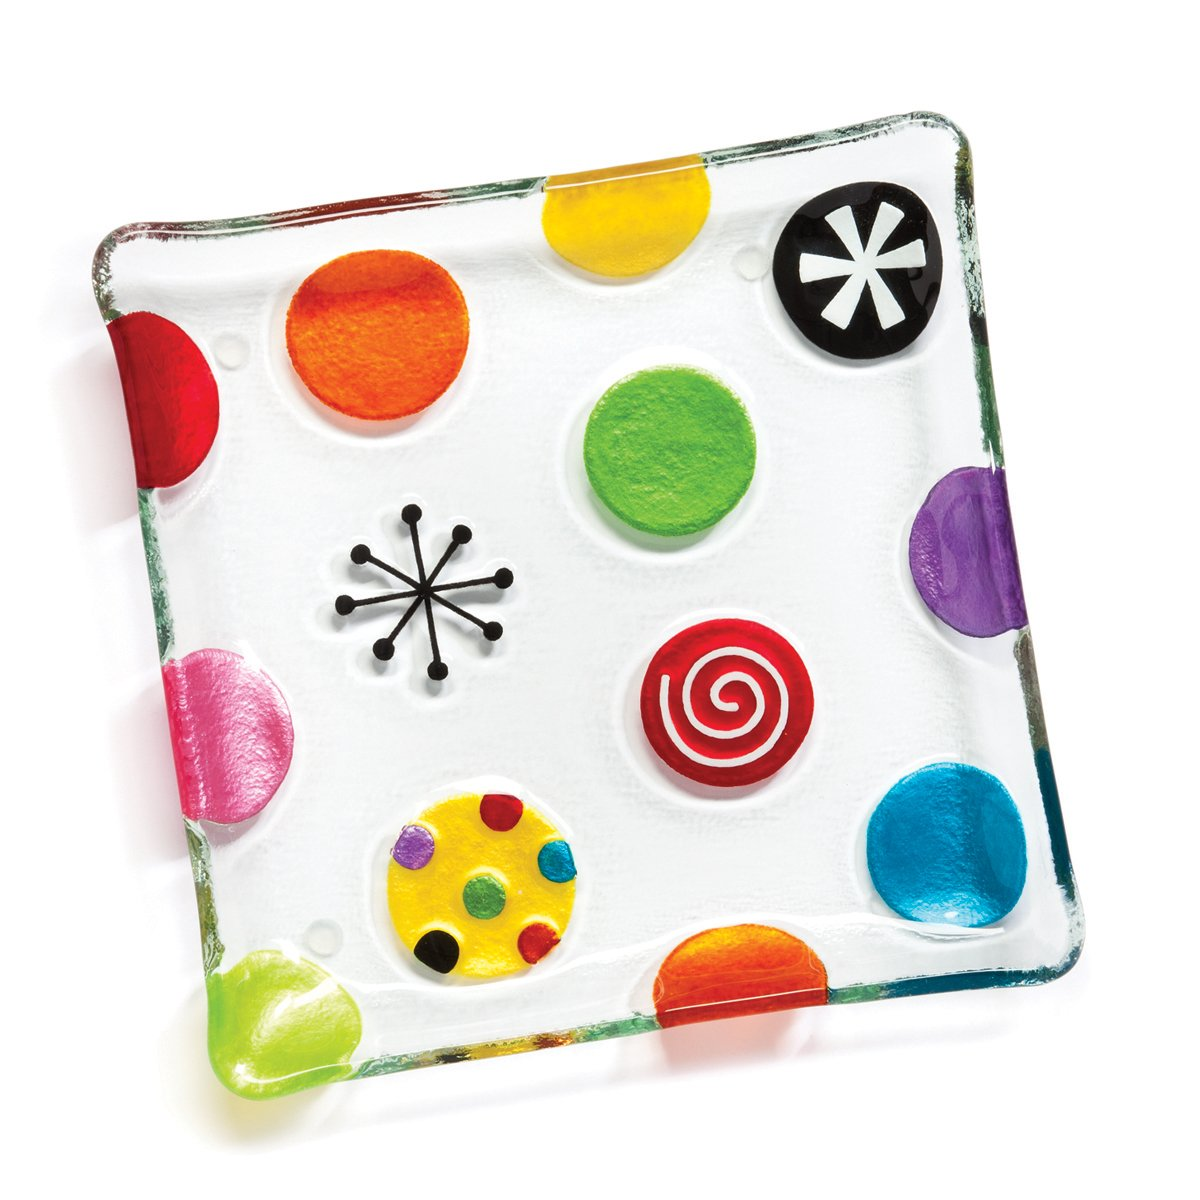 DEMDACO Silvestri Glass Fusion Dots Snack Plate DEMDACO - Home 20120109